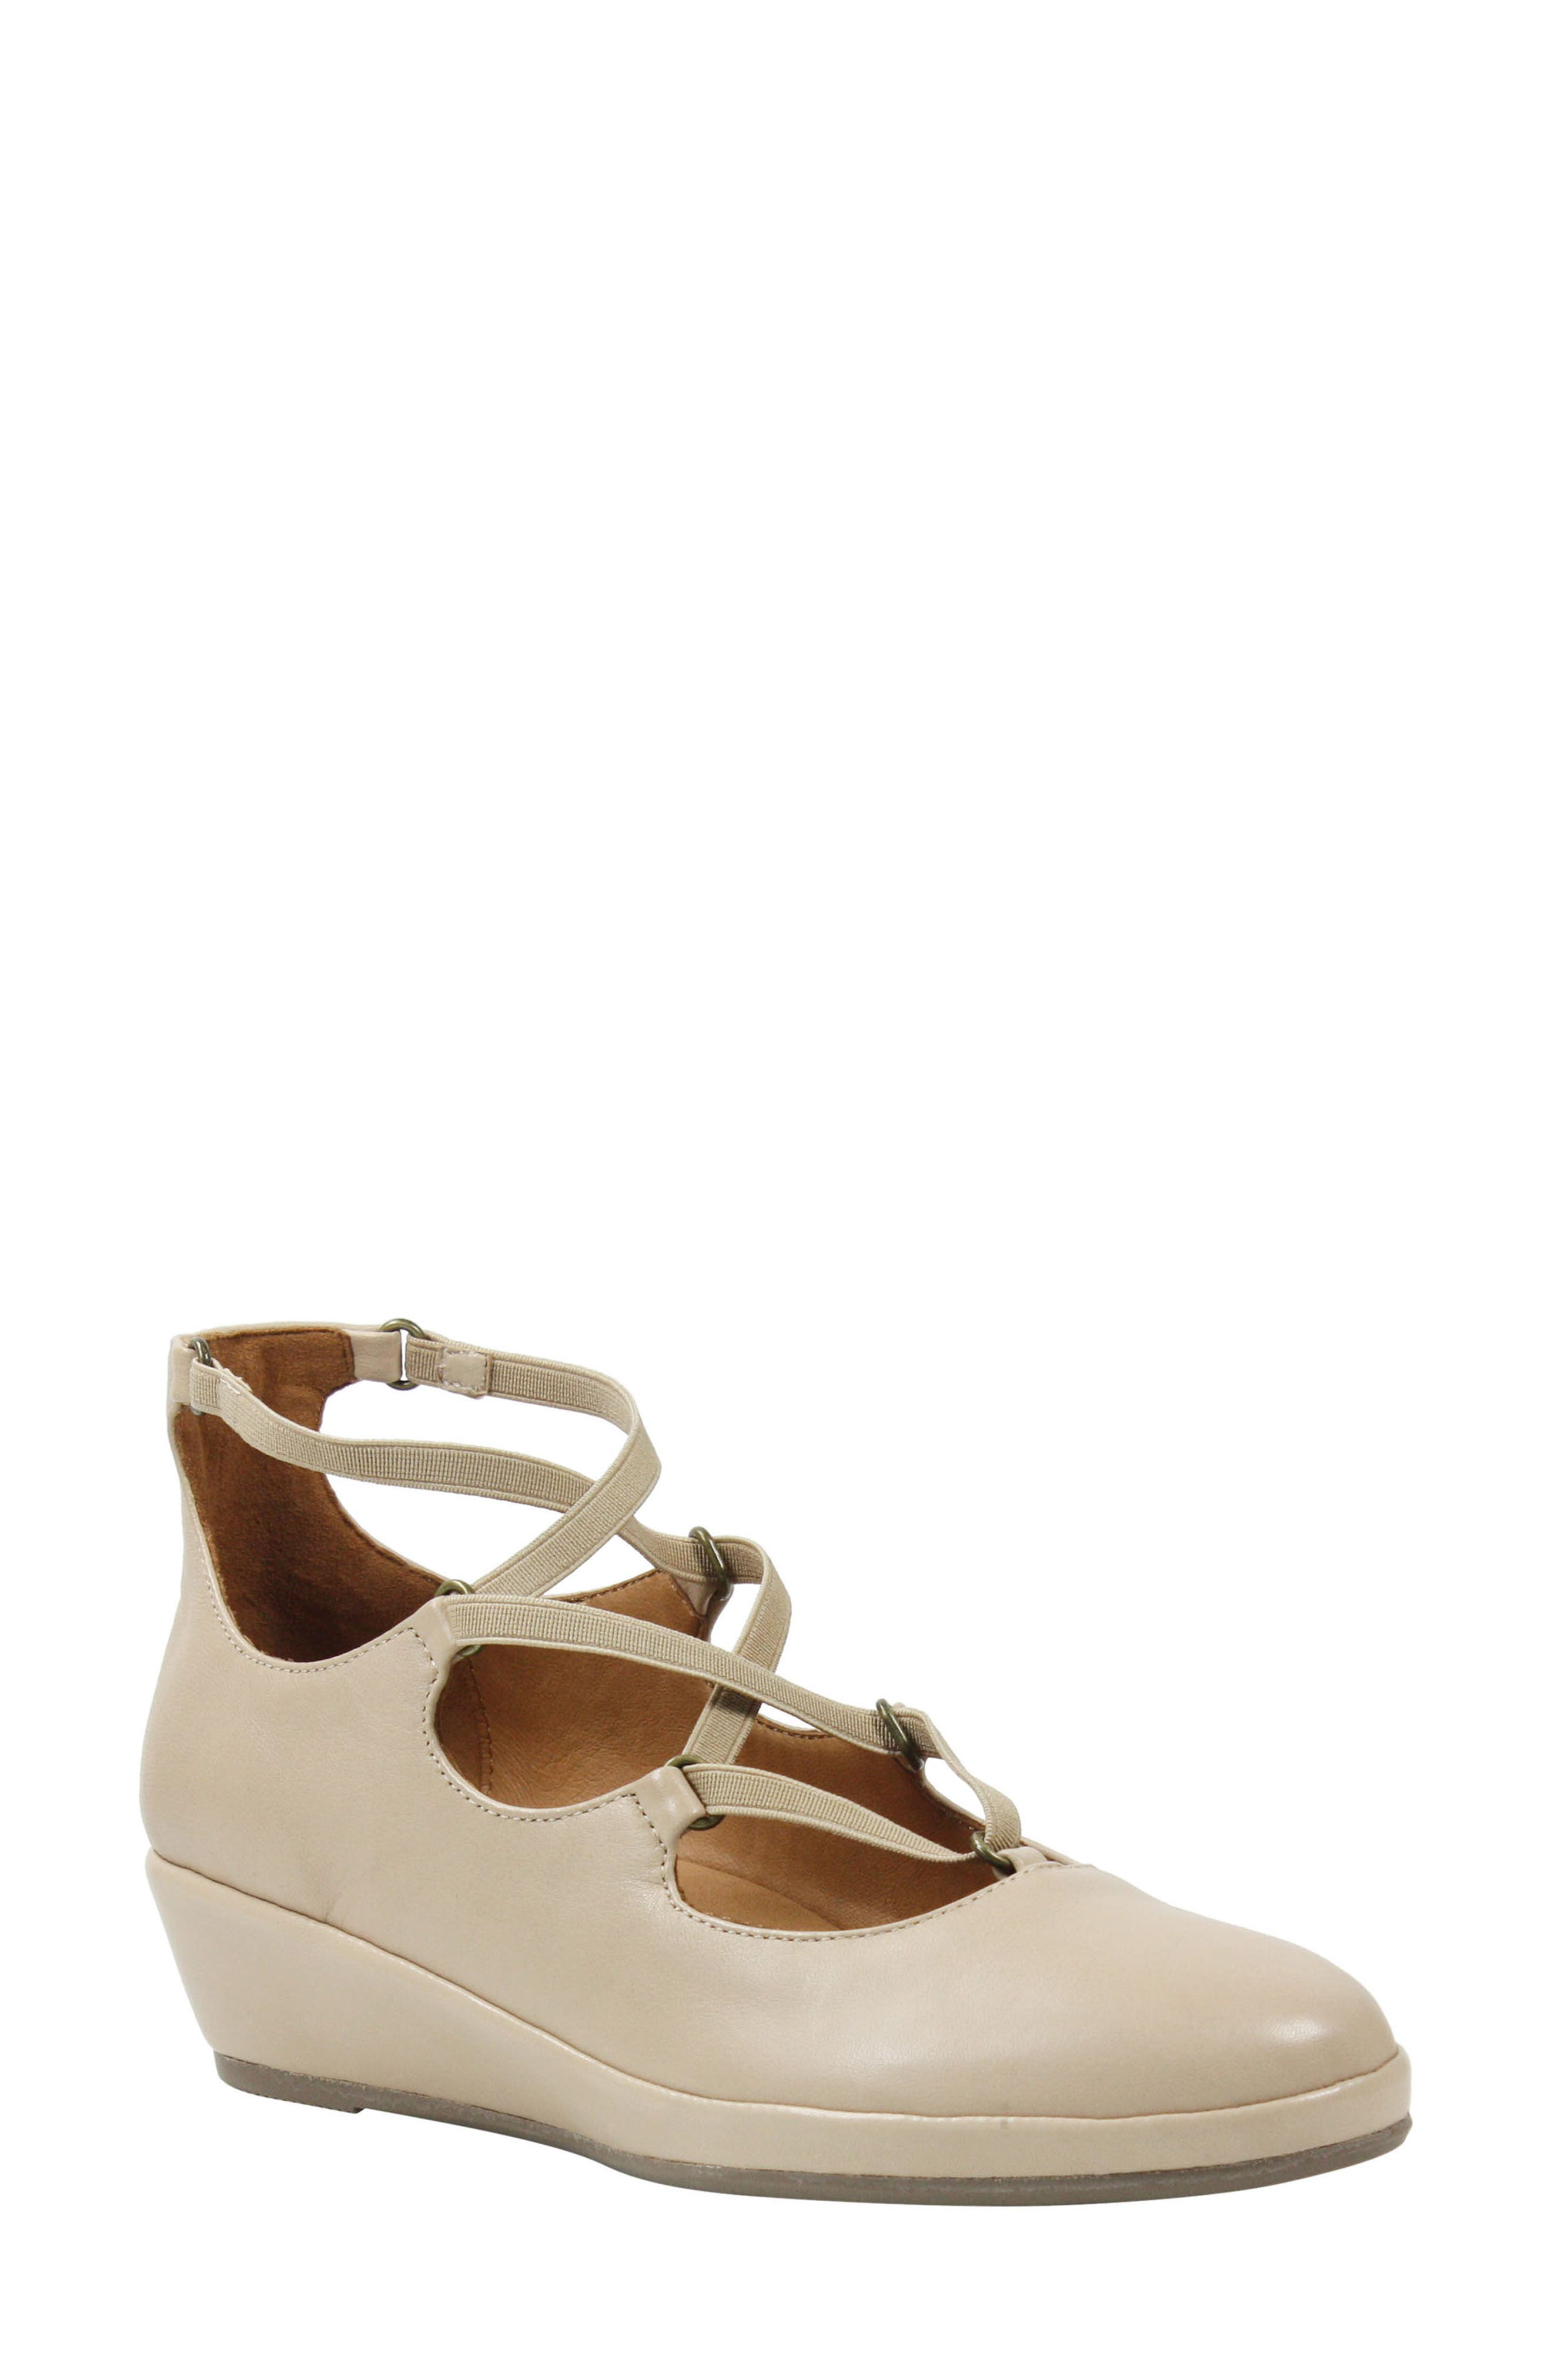 Benham Wedge,                         Main,                         color, Nude Leather